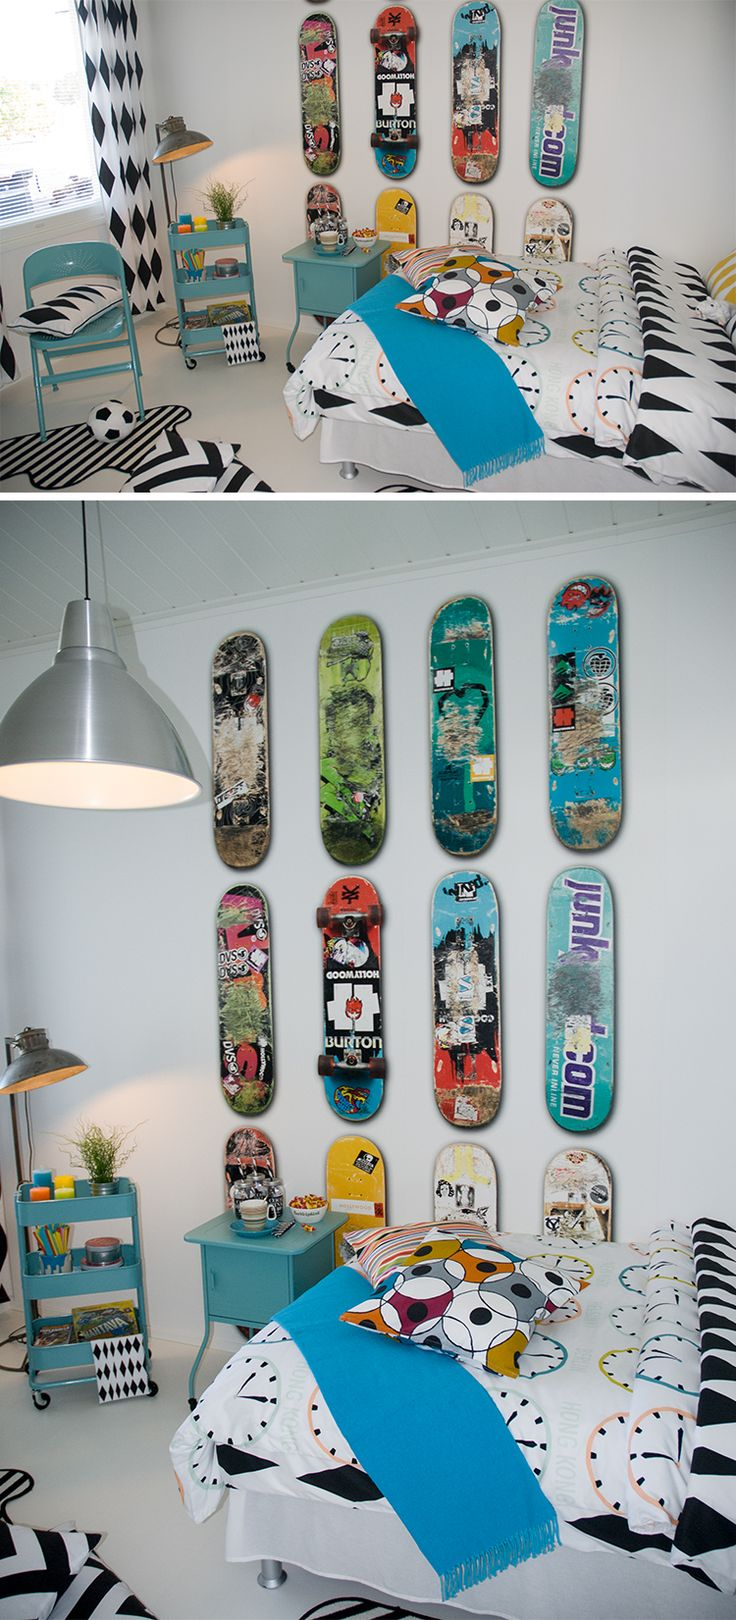 Coolt tonårsrum med skateboards på tapeten